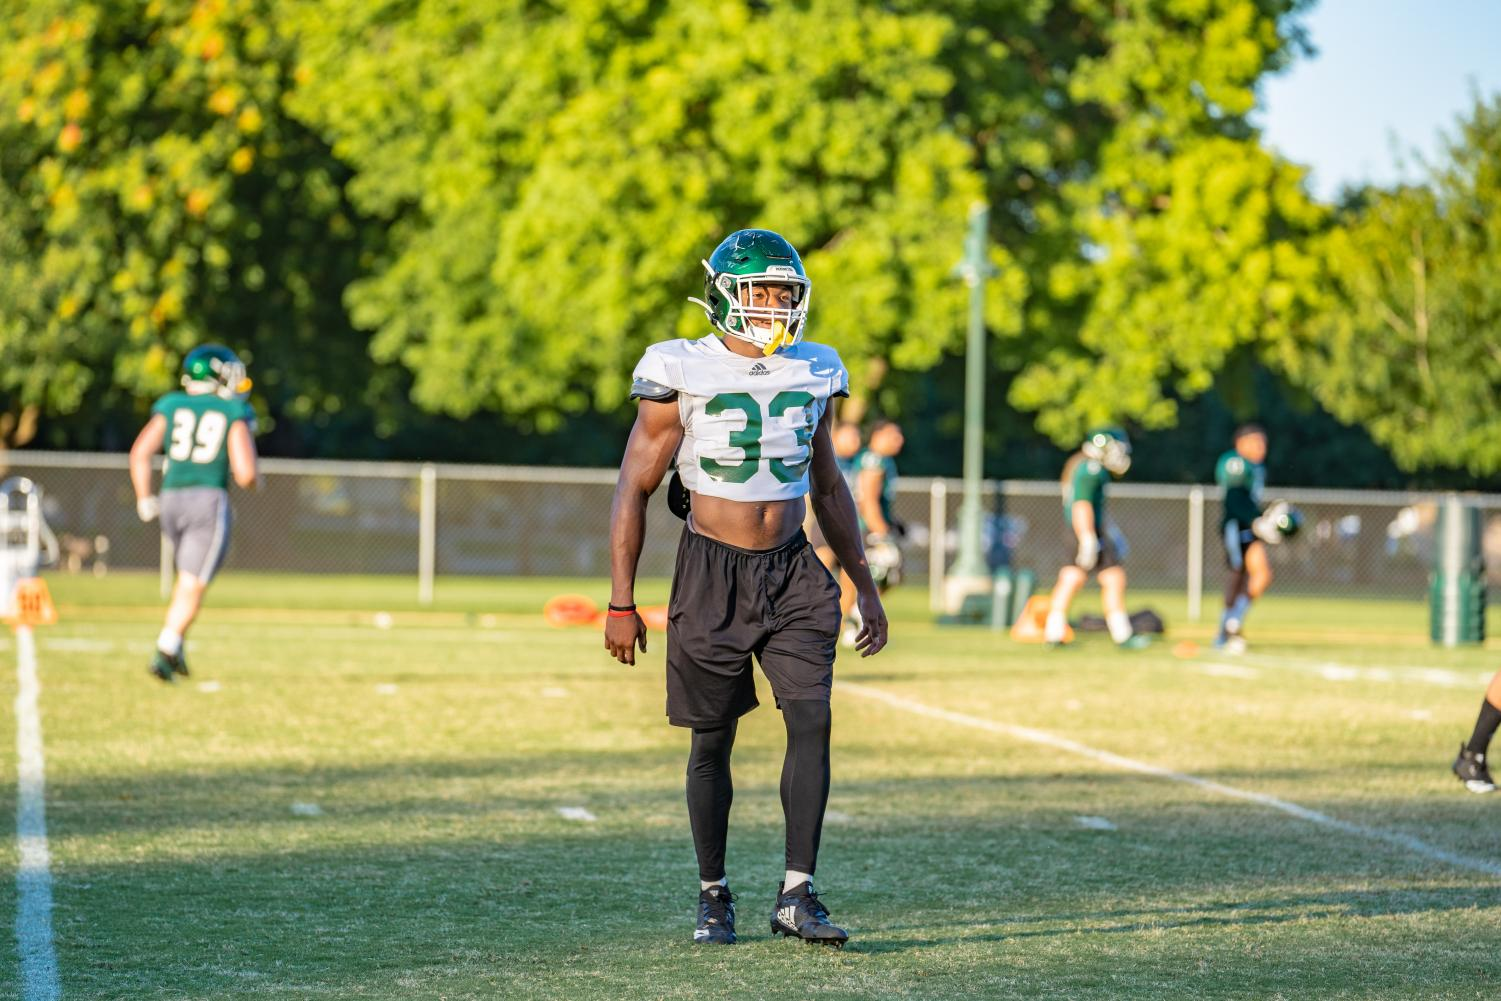 Sac+State+junior+running+back+Elijah+Dotson+walks+toward+the+sideline+during+training+camp+on+Tuesday%2C+August+12+at+the+practice+field.+Dotson+earned+first+team+All-Big+Sky+honors+in+2018%2C+becoming+the+first+Sac+State+RB+to+do+so+since+2000.